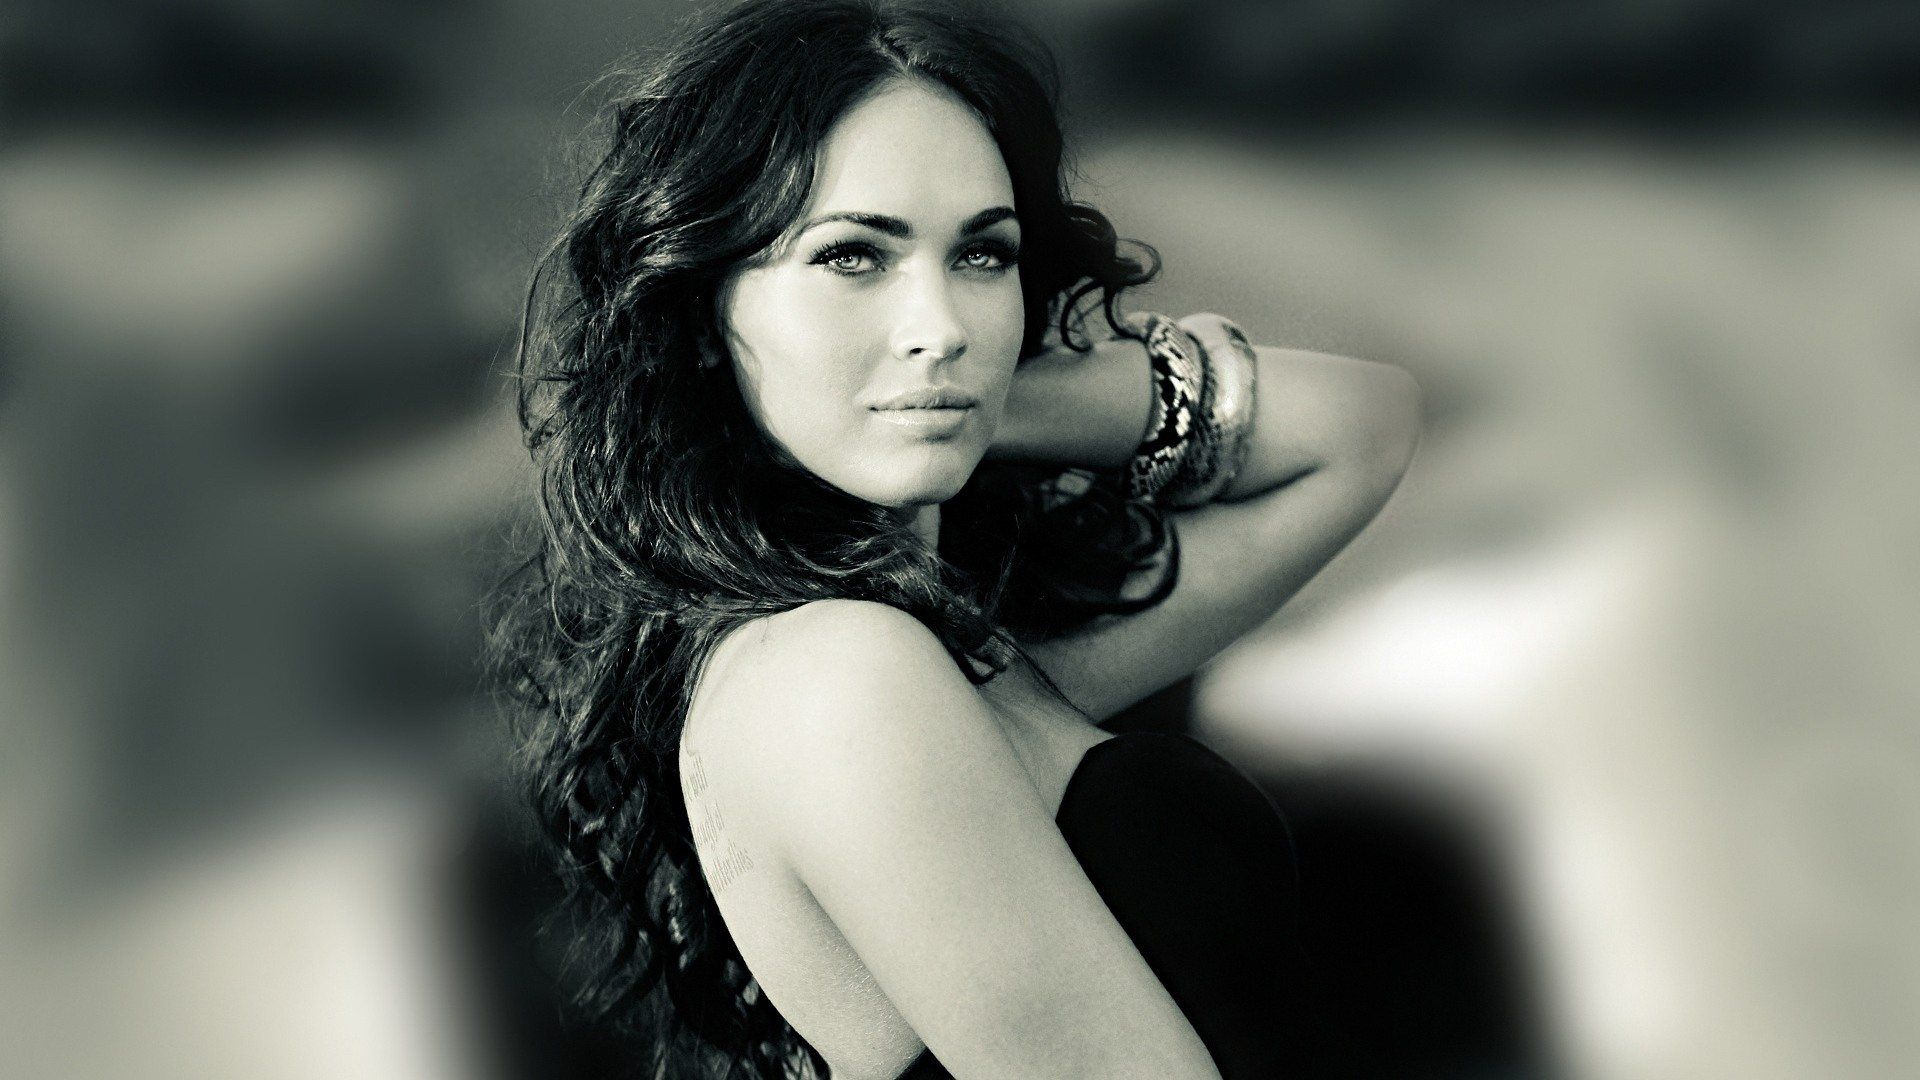 megan fox hd http://sizlingpeople/wp-content/uploads/2016/05